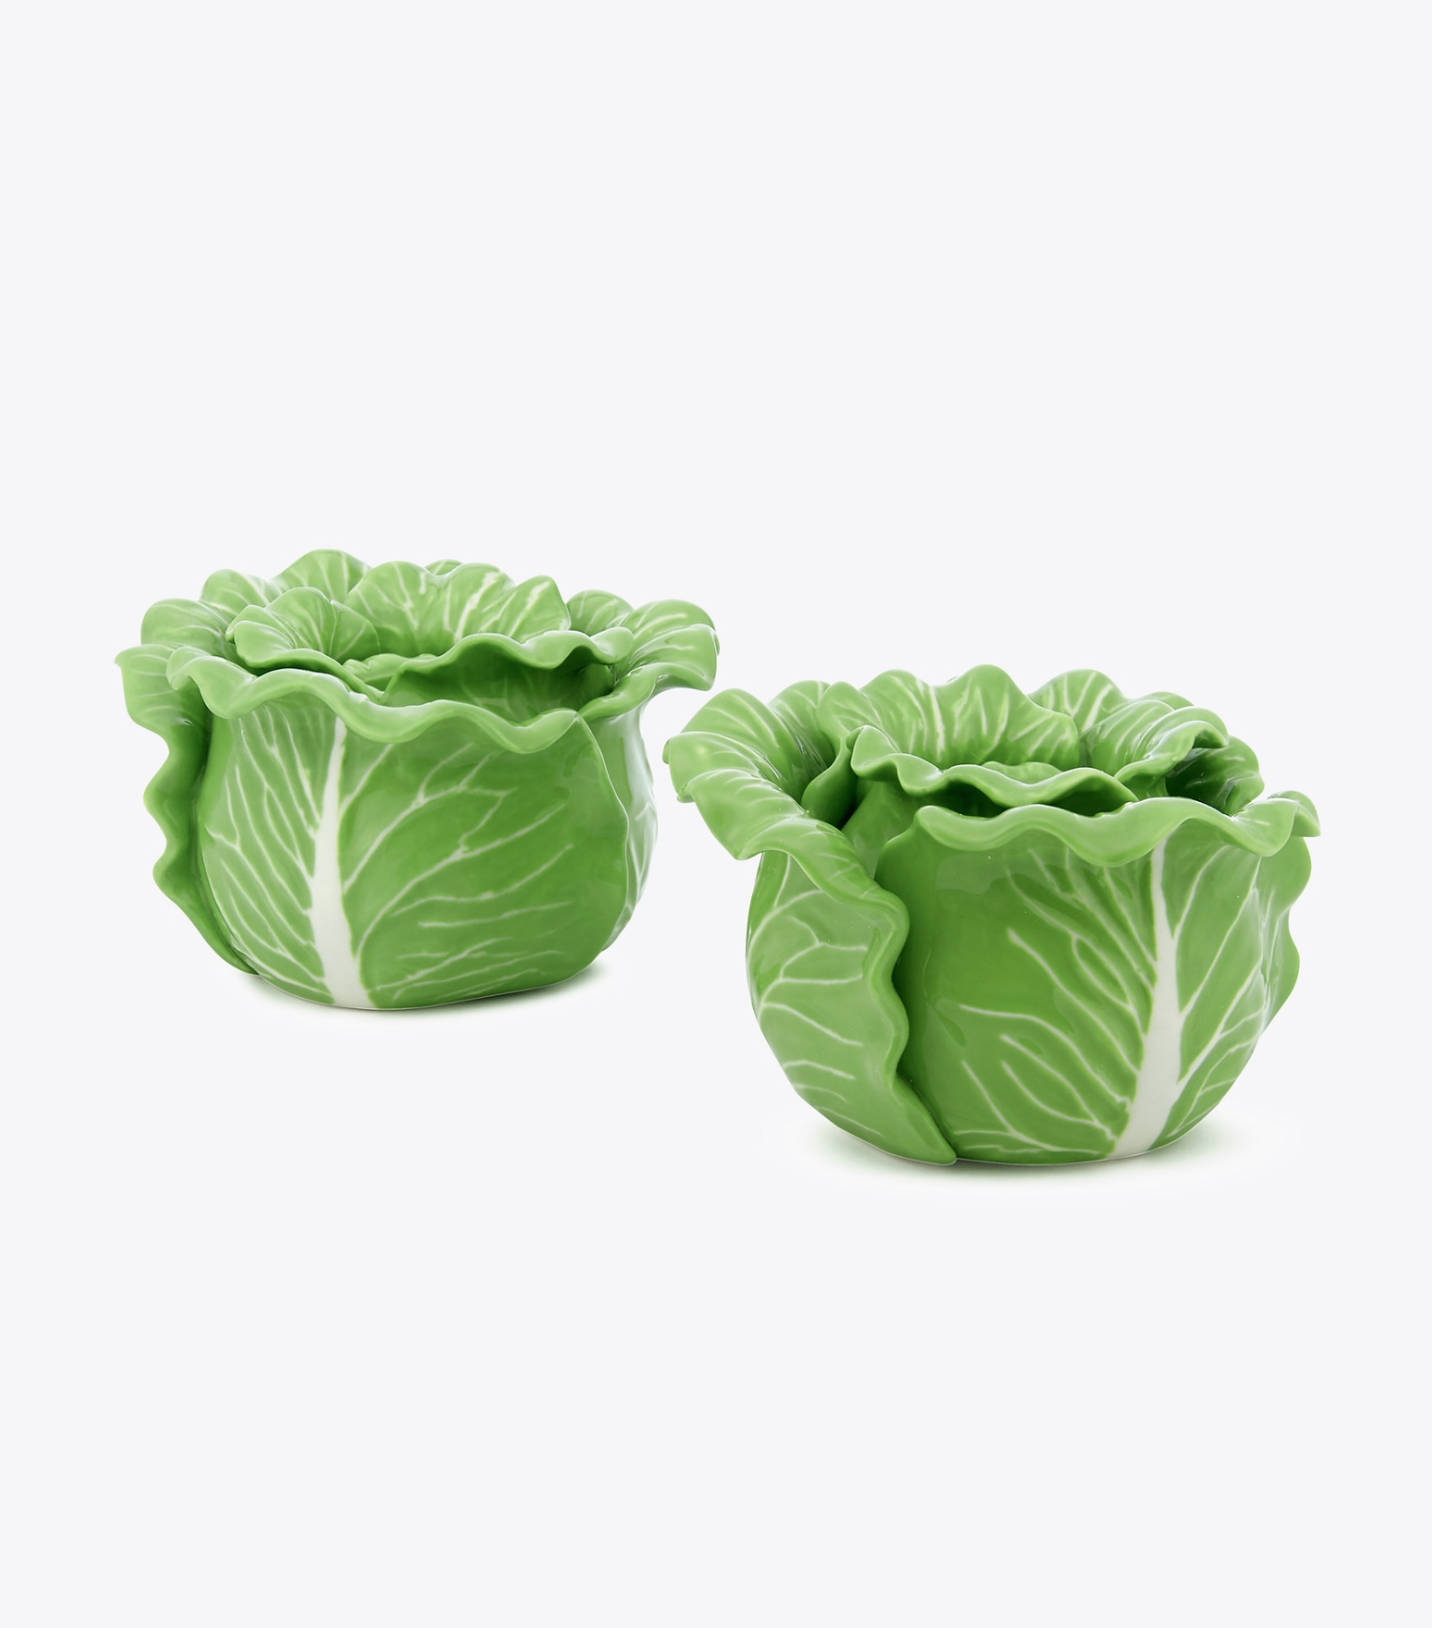 Tory Burch Home Lettuce Ware Candle Holder